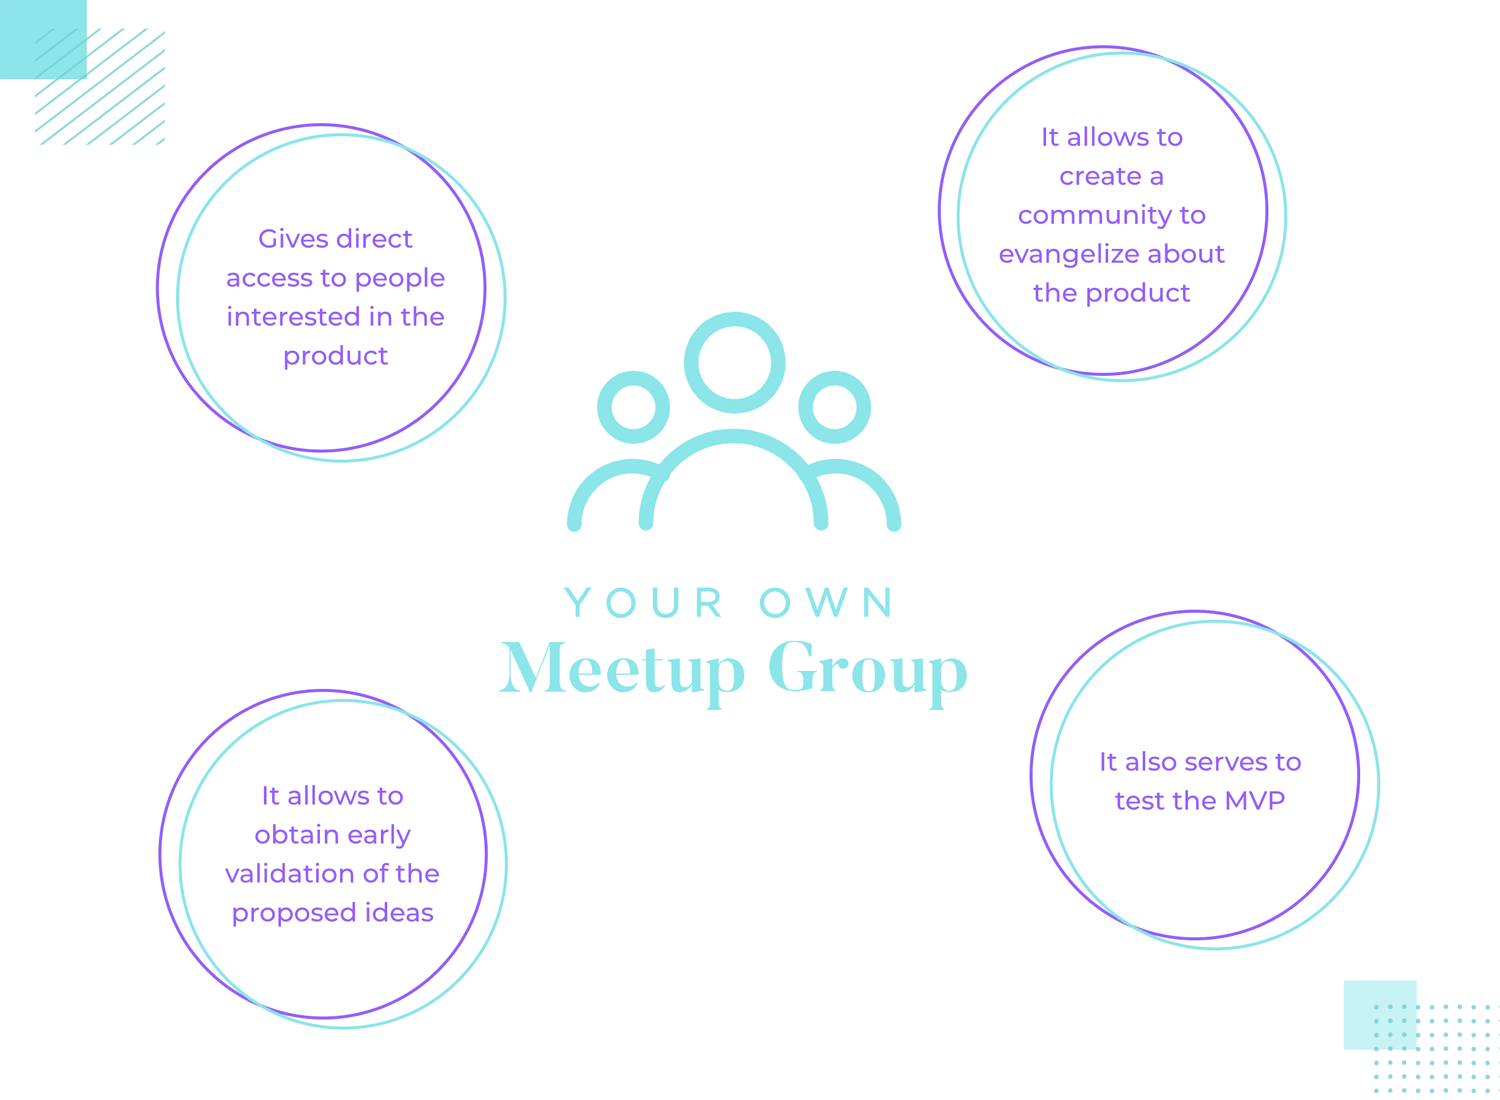 benefits of meeting potential users